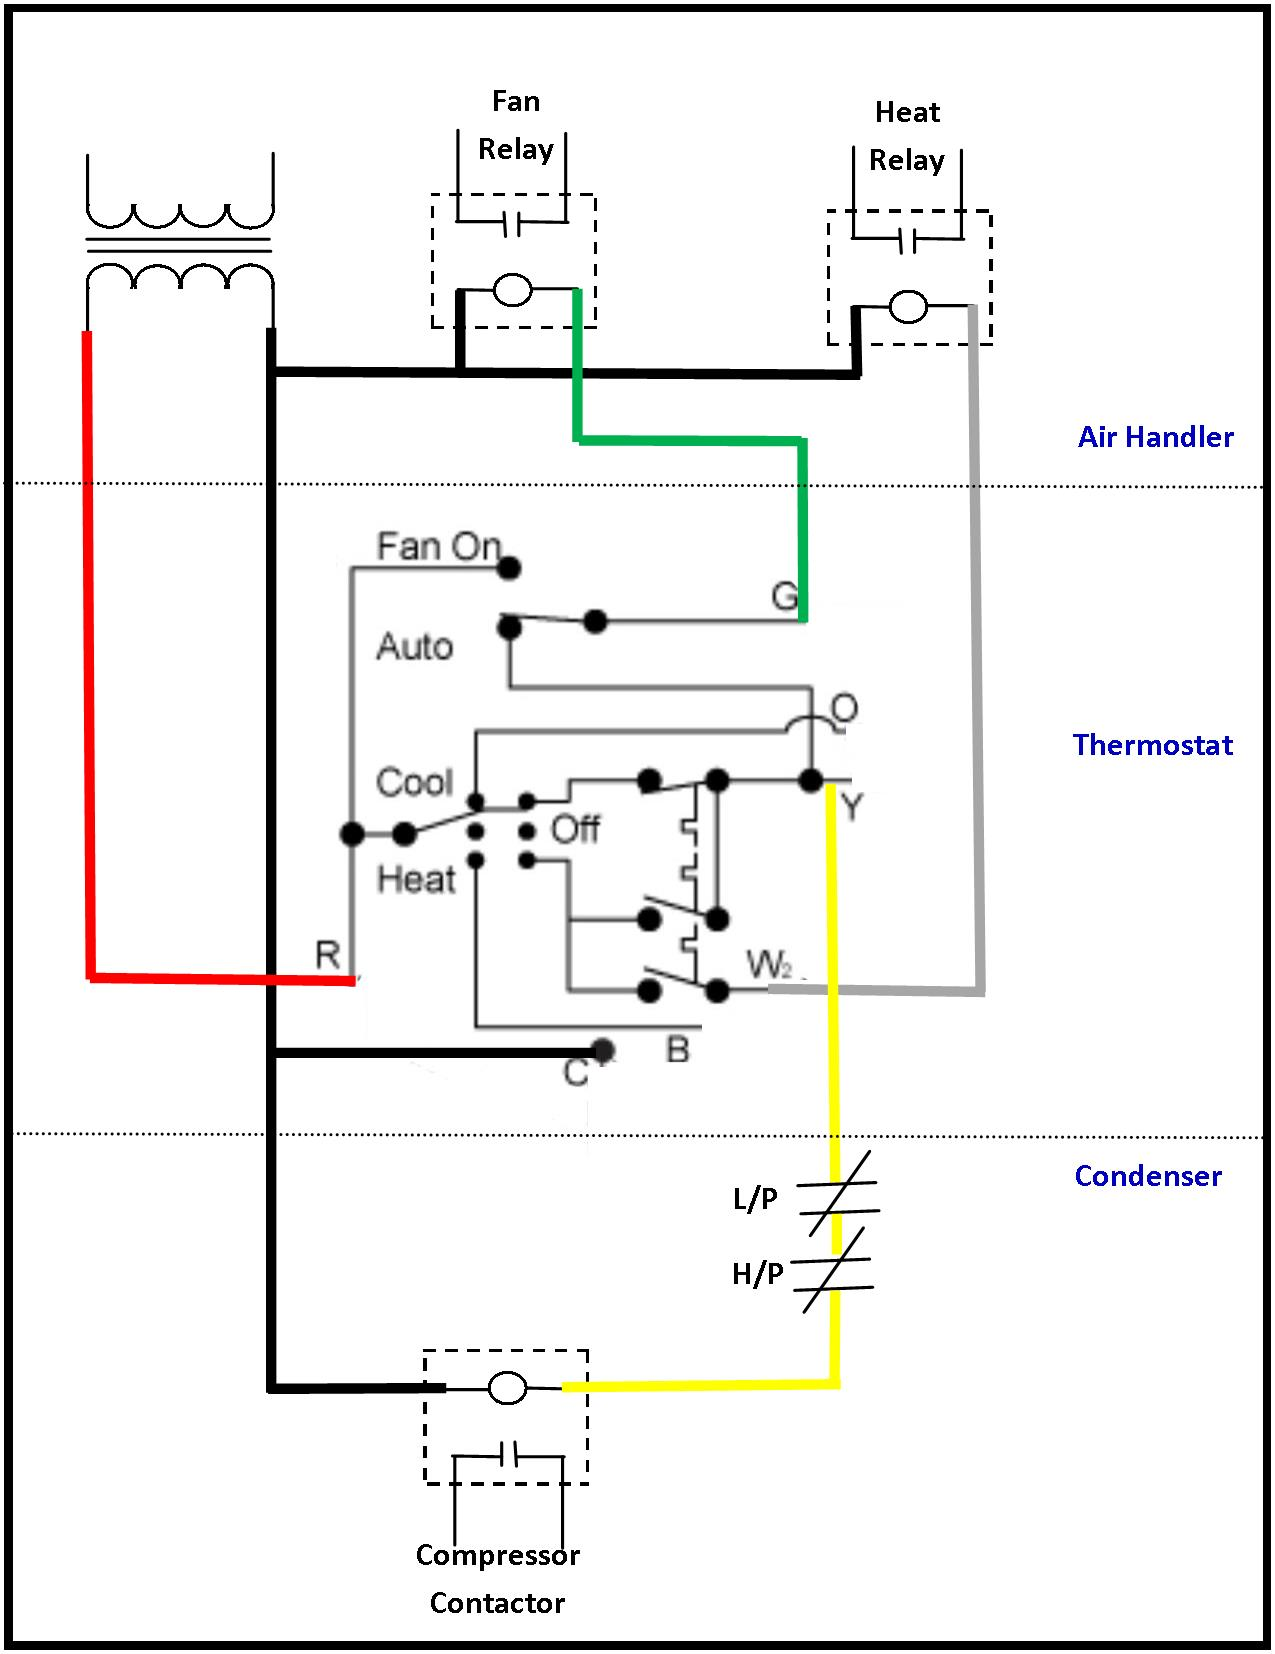 AC low voltage wiring diagram1 hvac contactor wiring diagram hvac condenser wiring diagram Simple Wiring Schematics at edmiracle.co